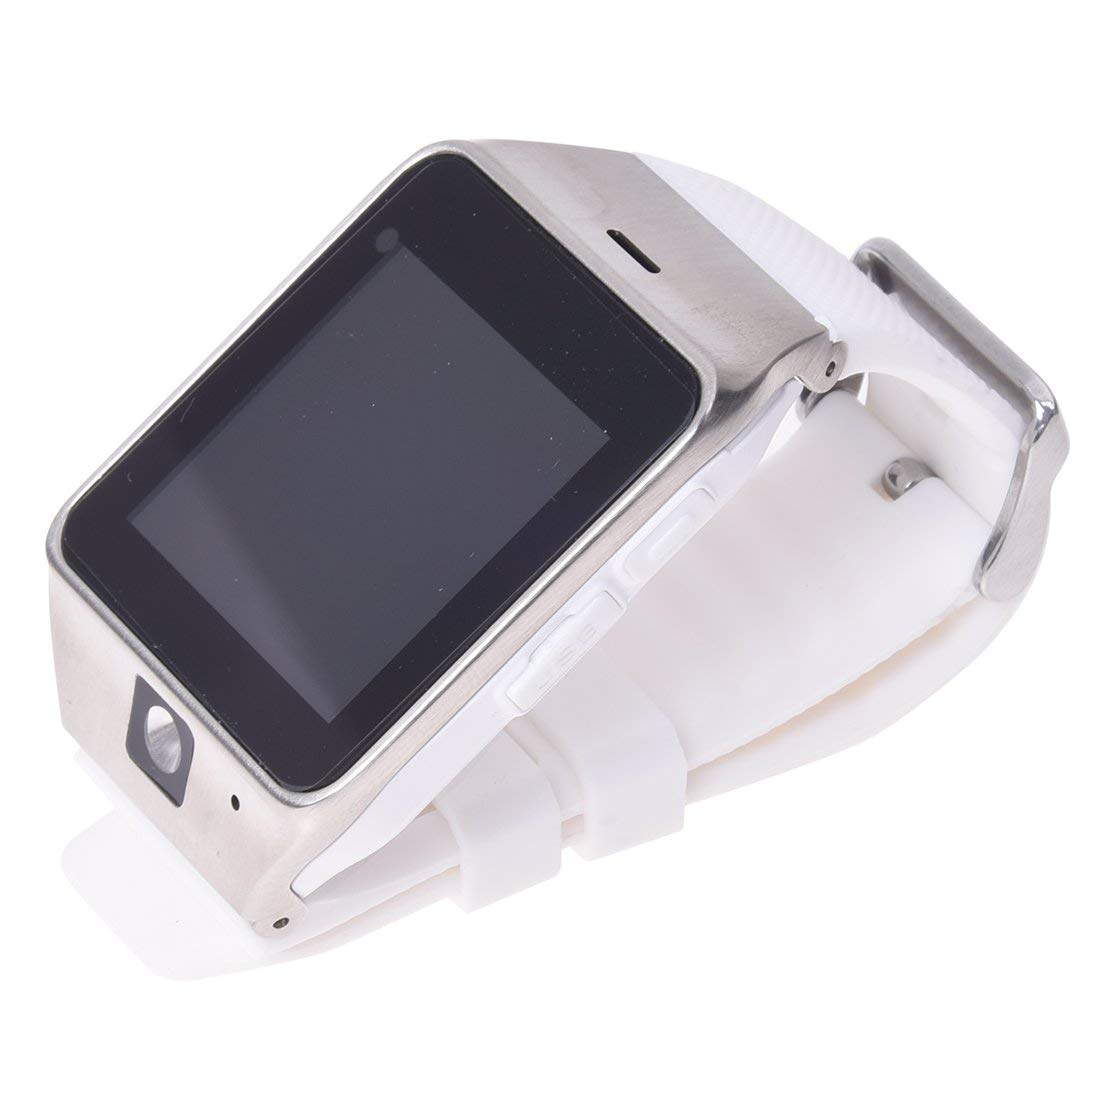 smart watch - SODIAL(R) GV18 NFC-enabled Aplus can be wearable Take Photo Bluetooth smart watch white